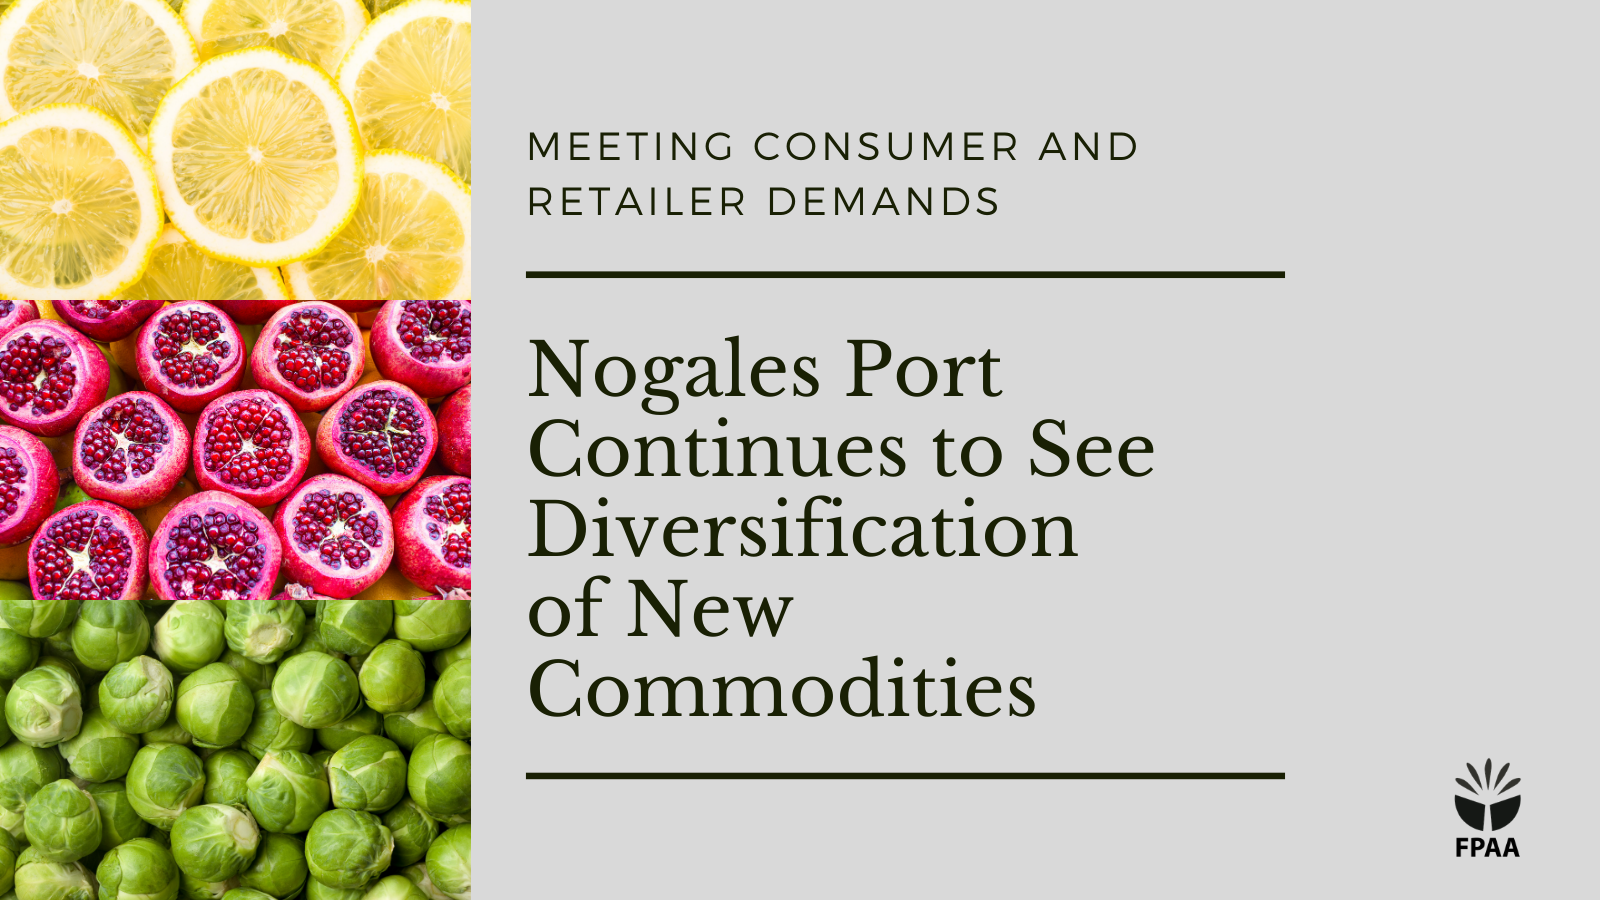 Nogales Port Continues to See Diversification of New Commodities, Reliable Supplies of Key Items